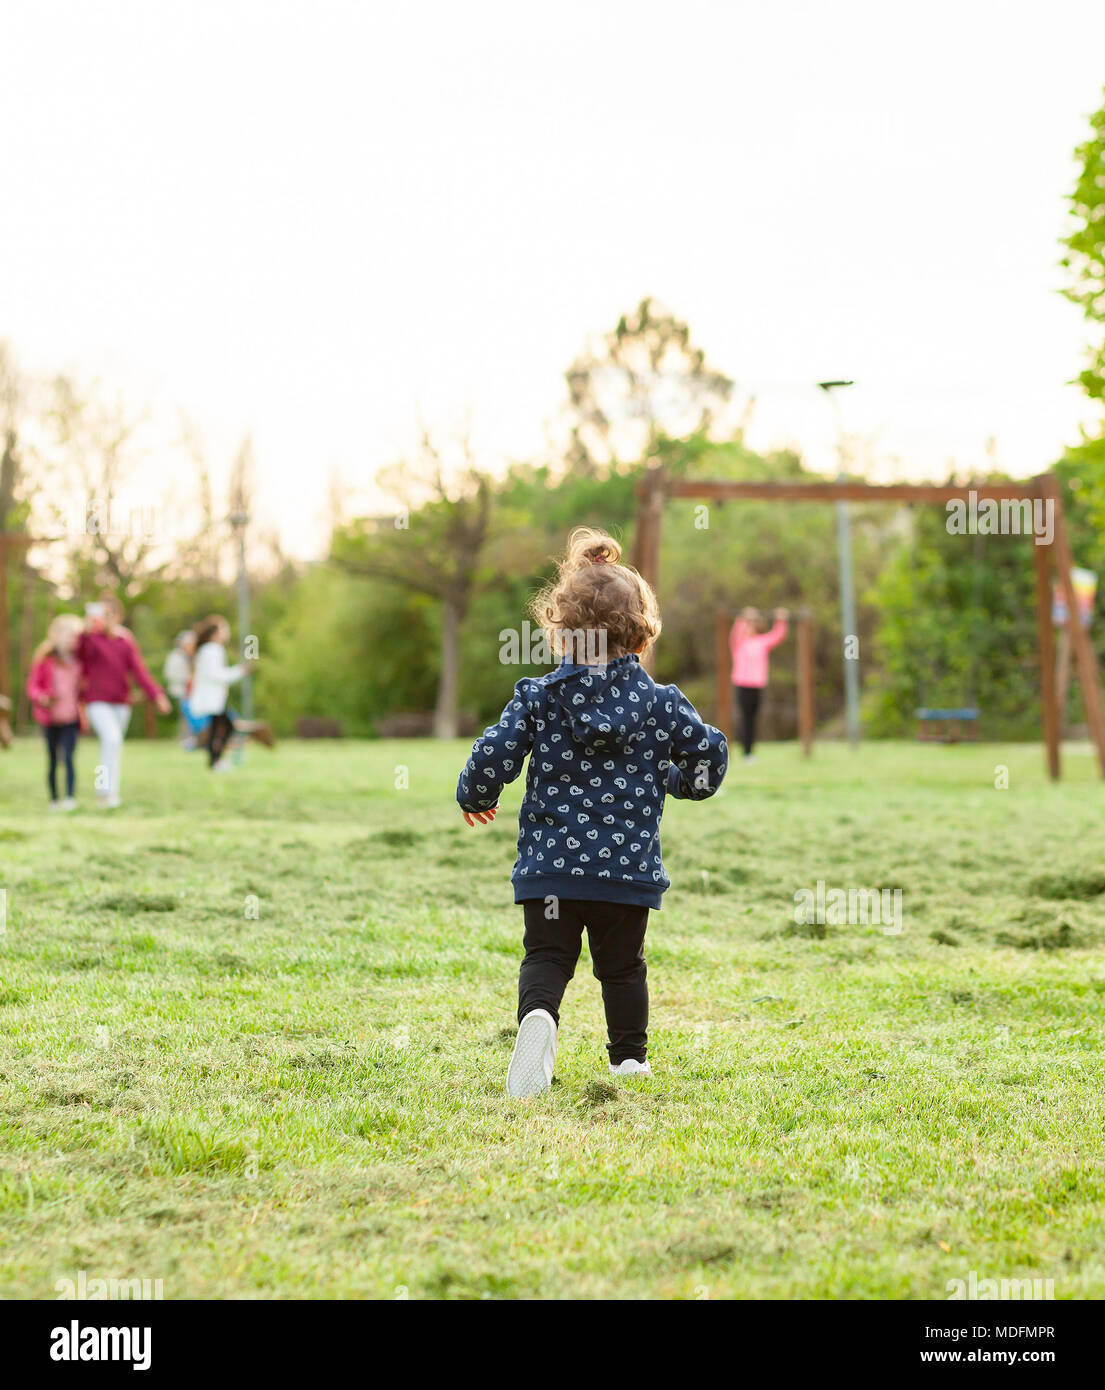 Little girl runs from behind in the park playing with other children. - Stock Image